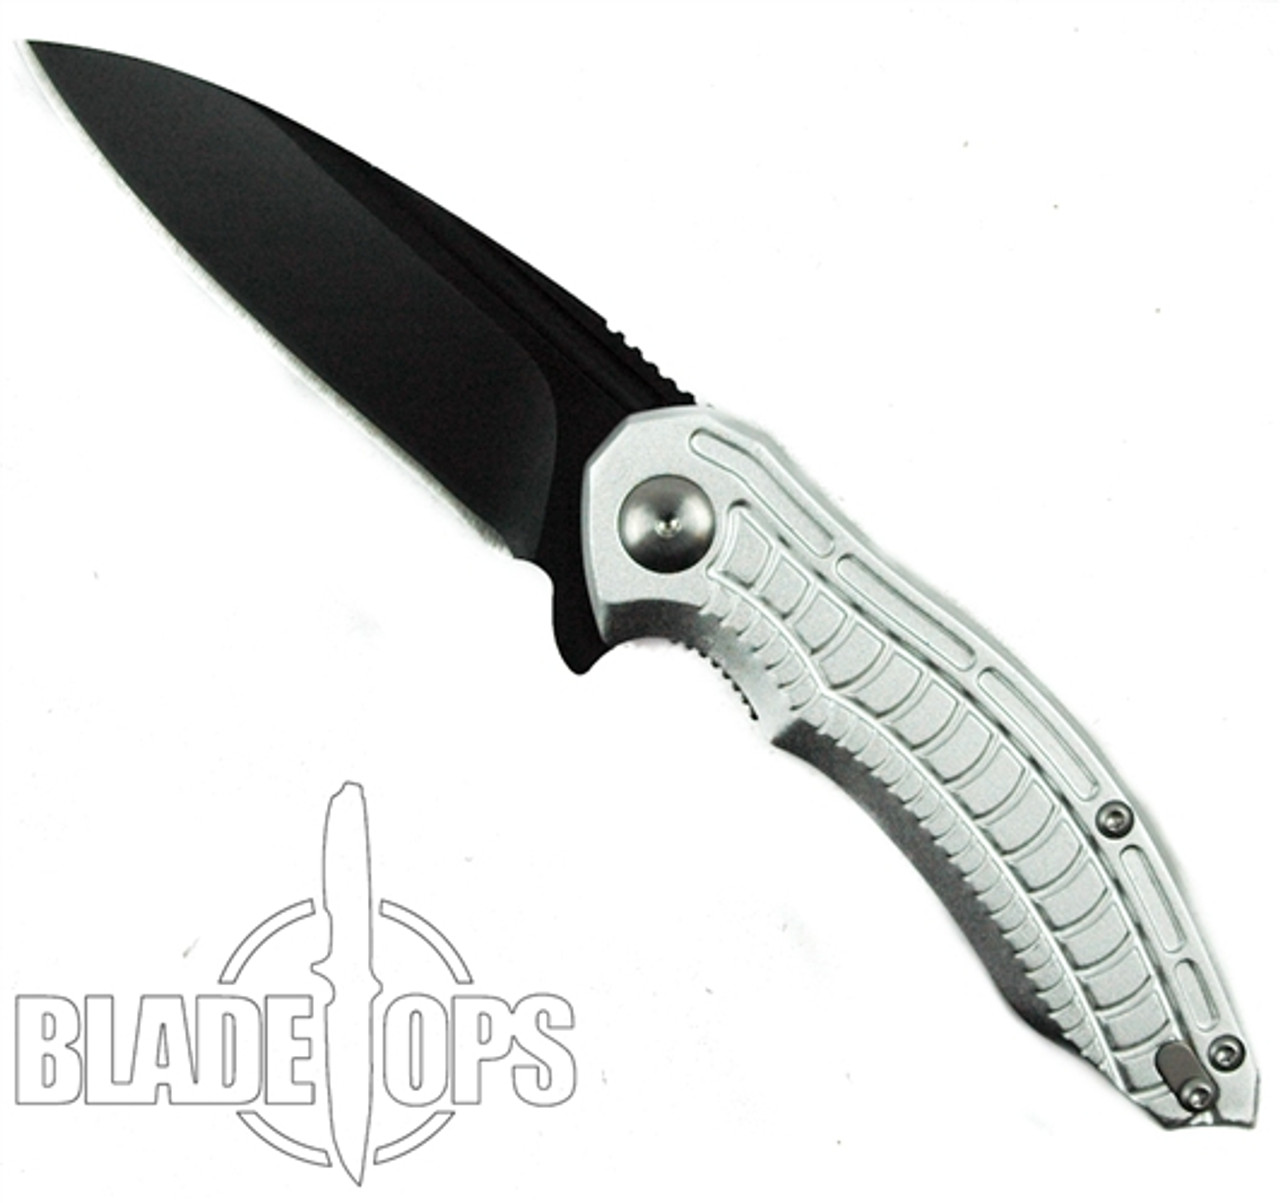 Brous Blades Silver Bionic 2.0 Flipper Knife, Black Blade